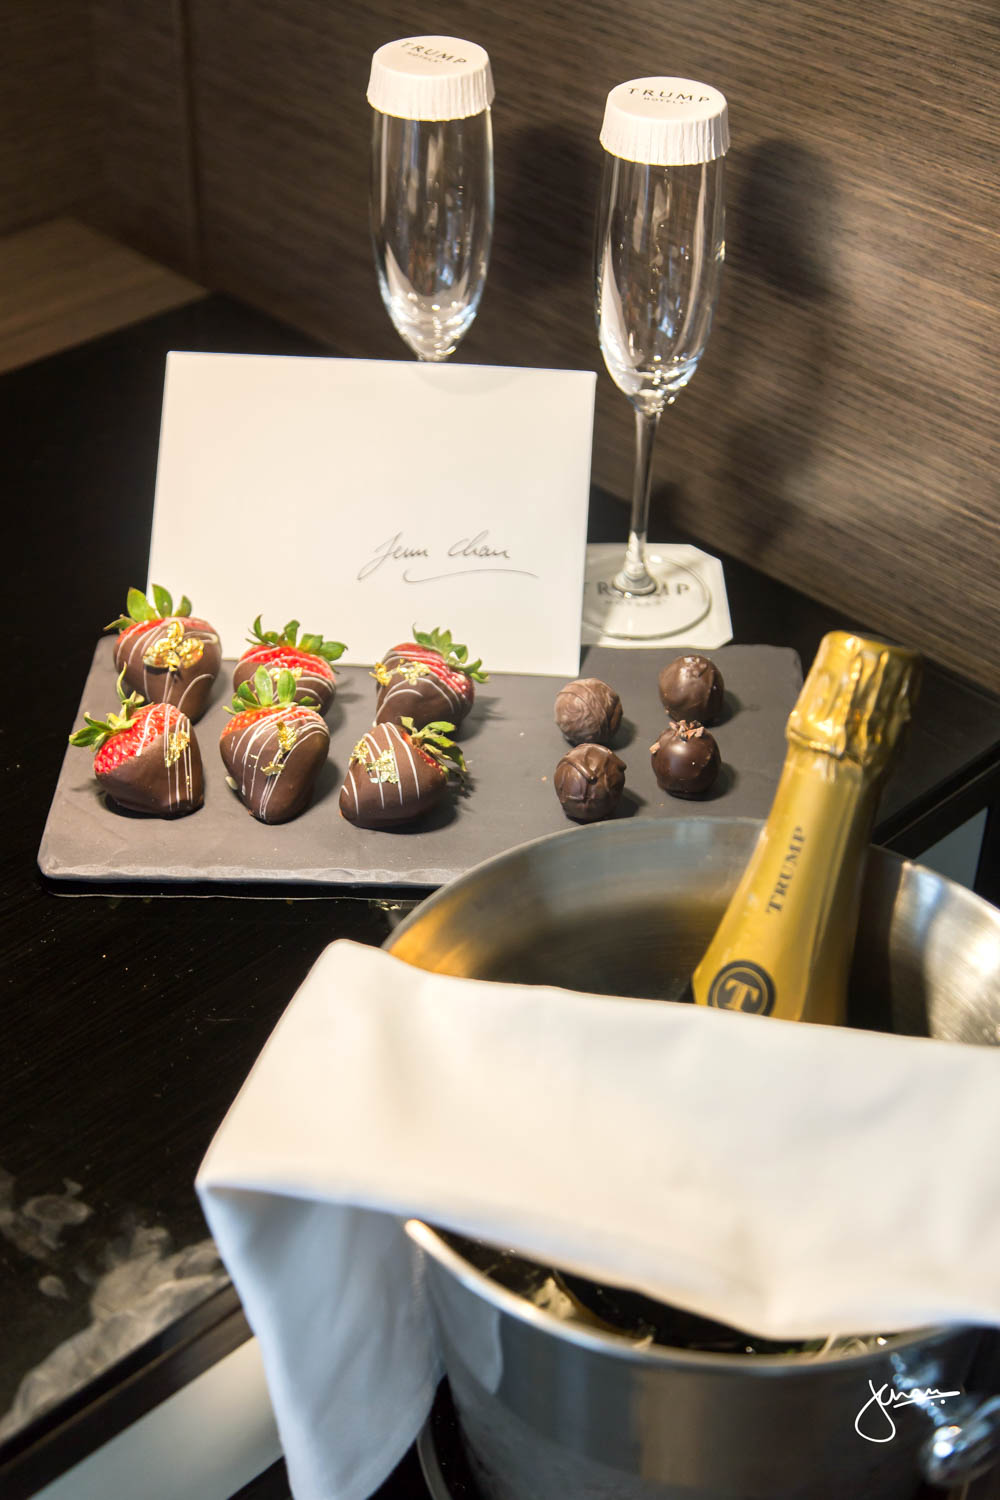 Trump Champagne & Chocolate Covered Strawberries